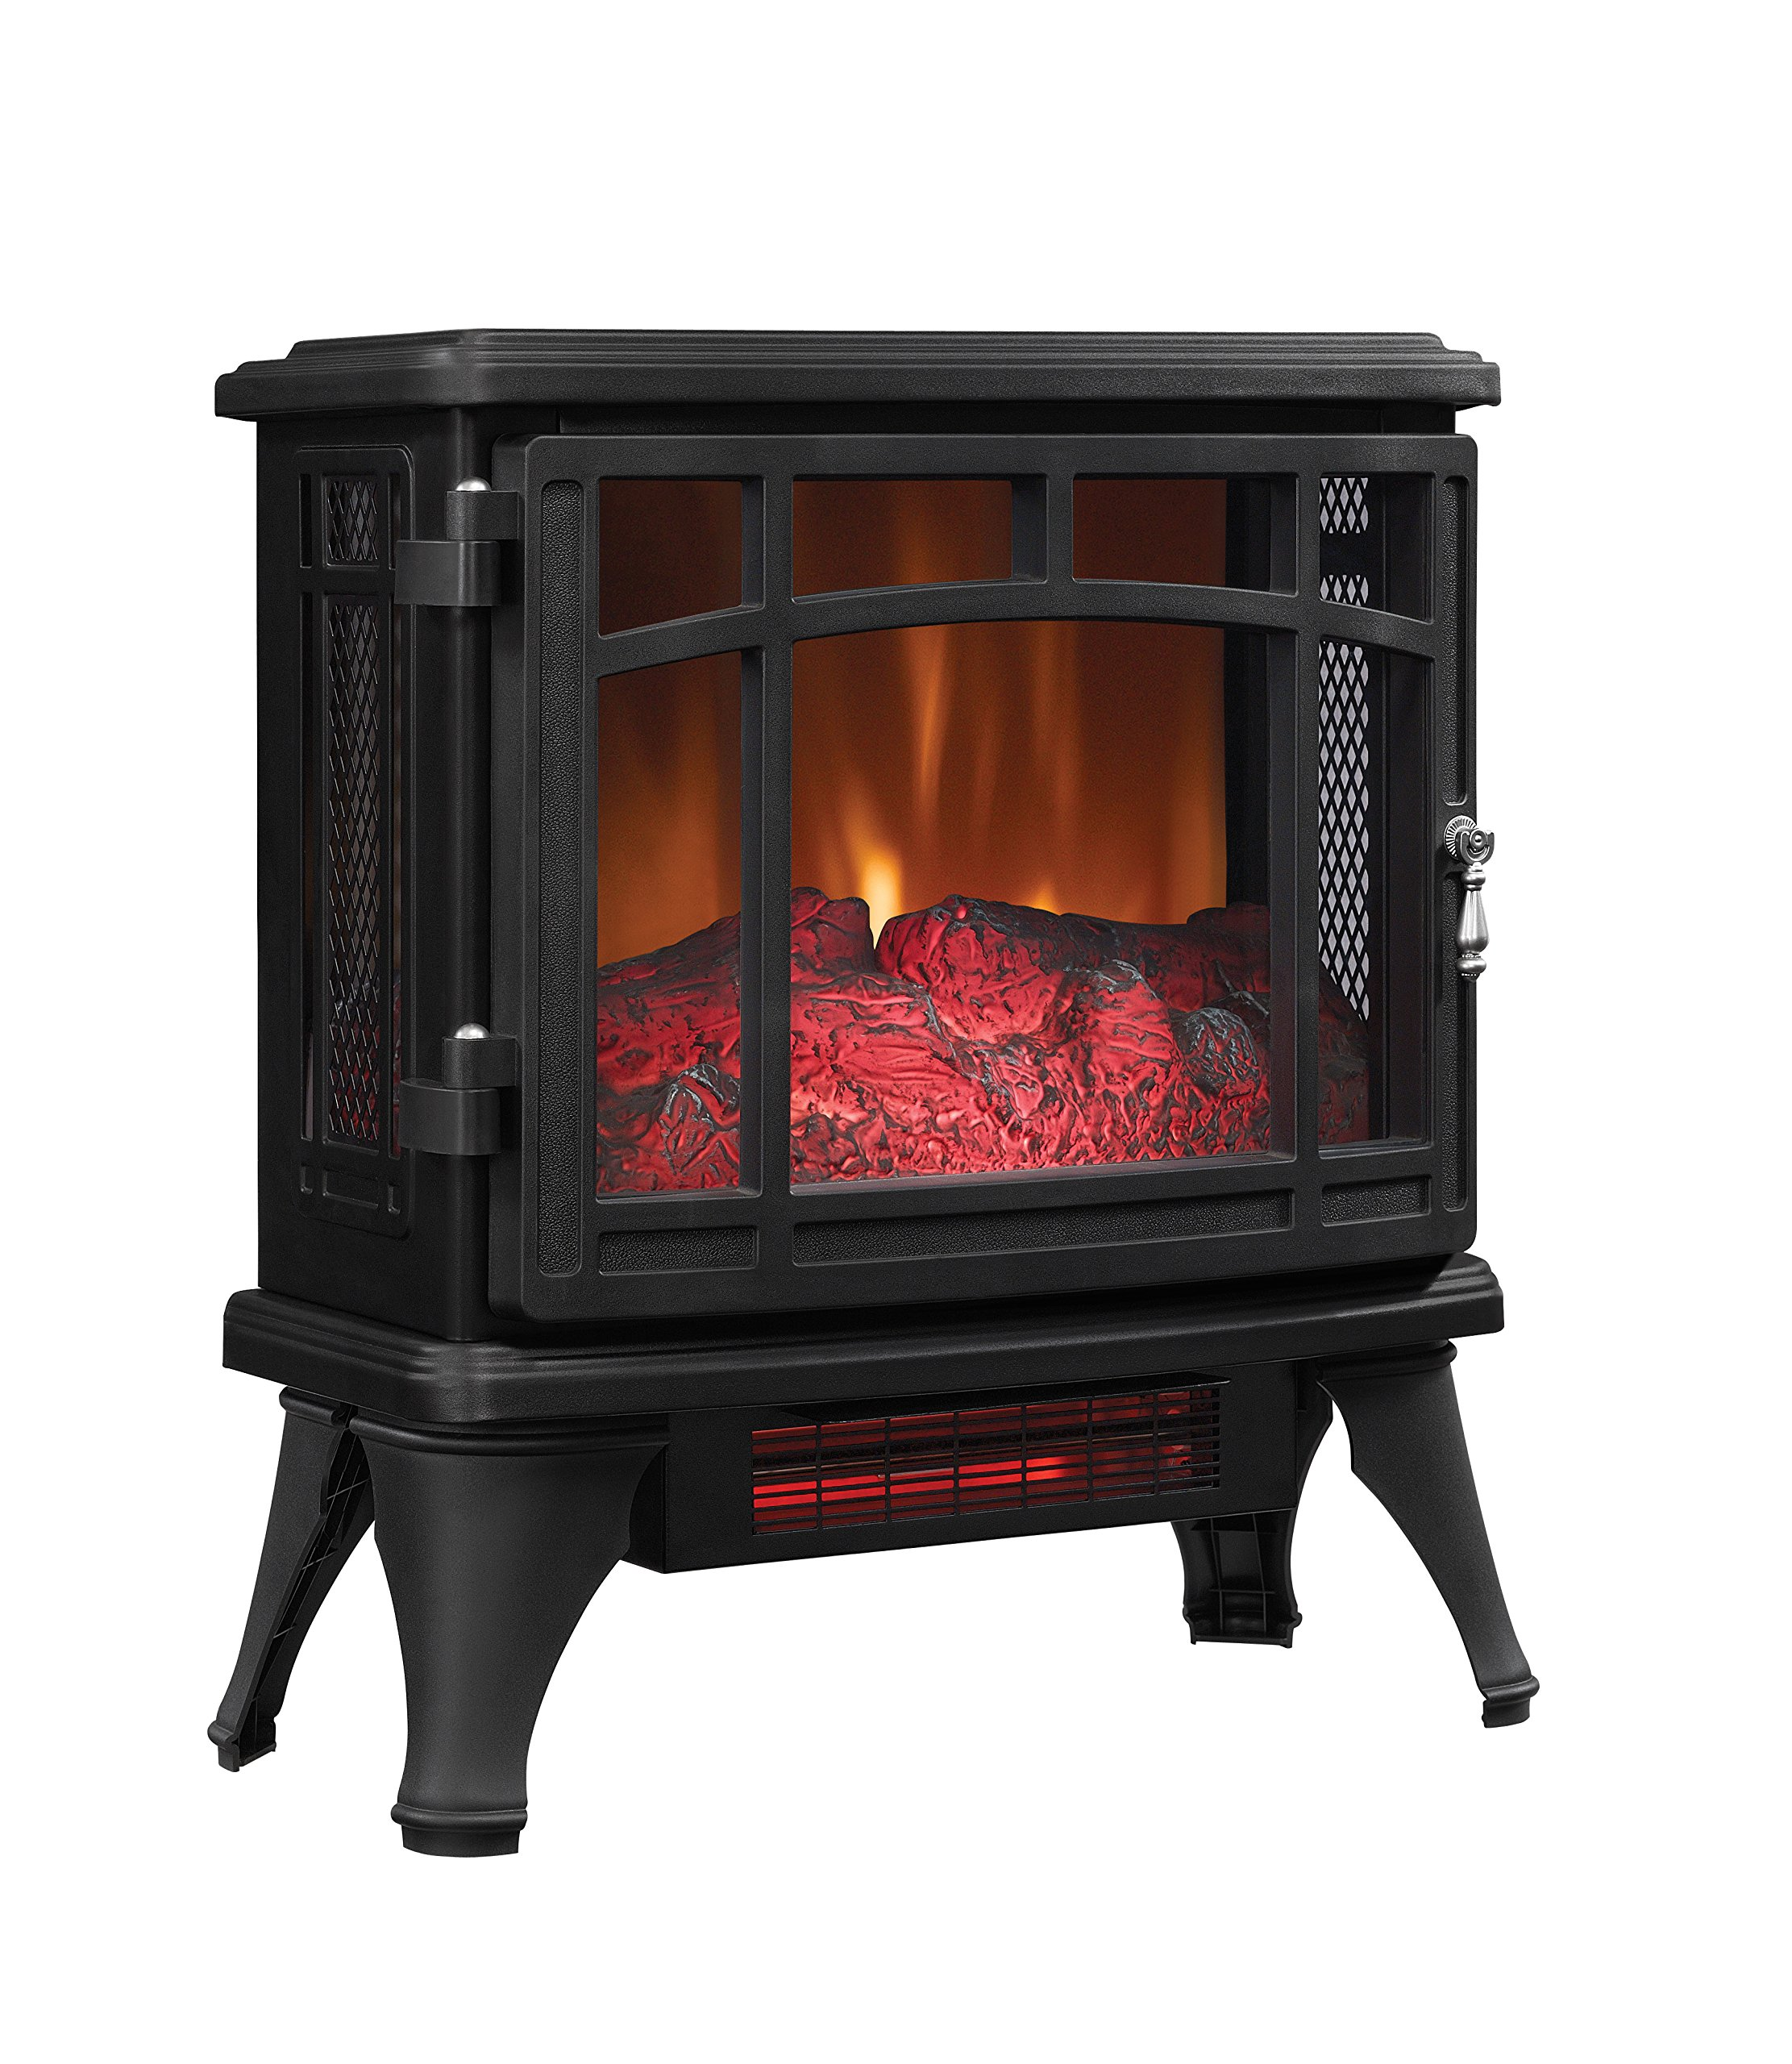 polystone heat category btu electric amazon mantel heaters tool top shop inserts equipment insert model tools fireplace with stoves seller profusion fireplaces northern